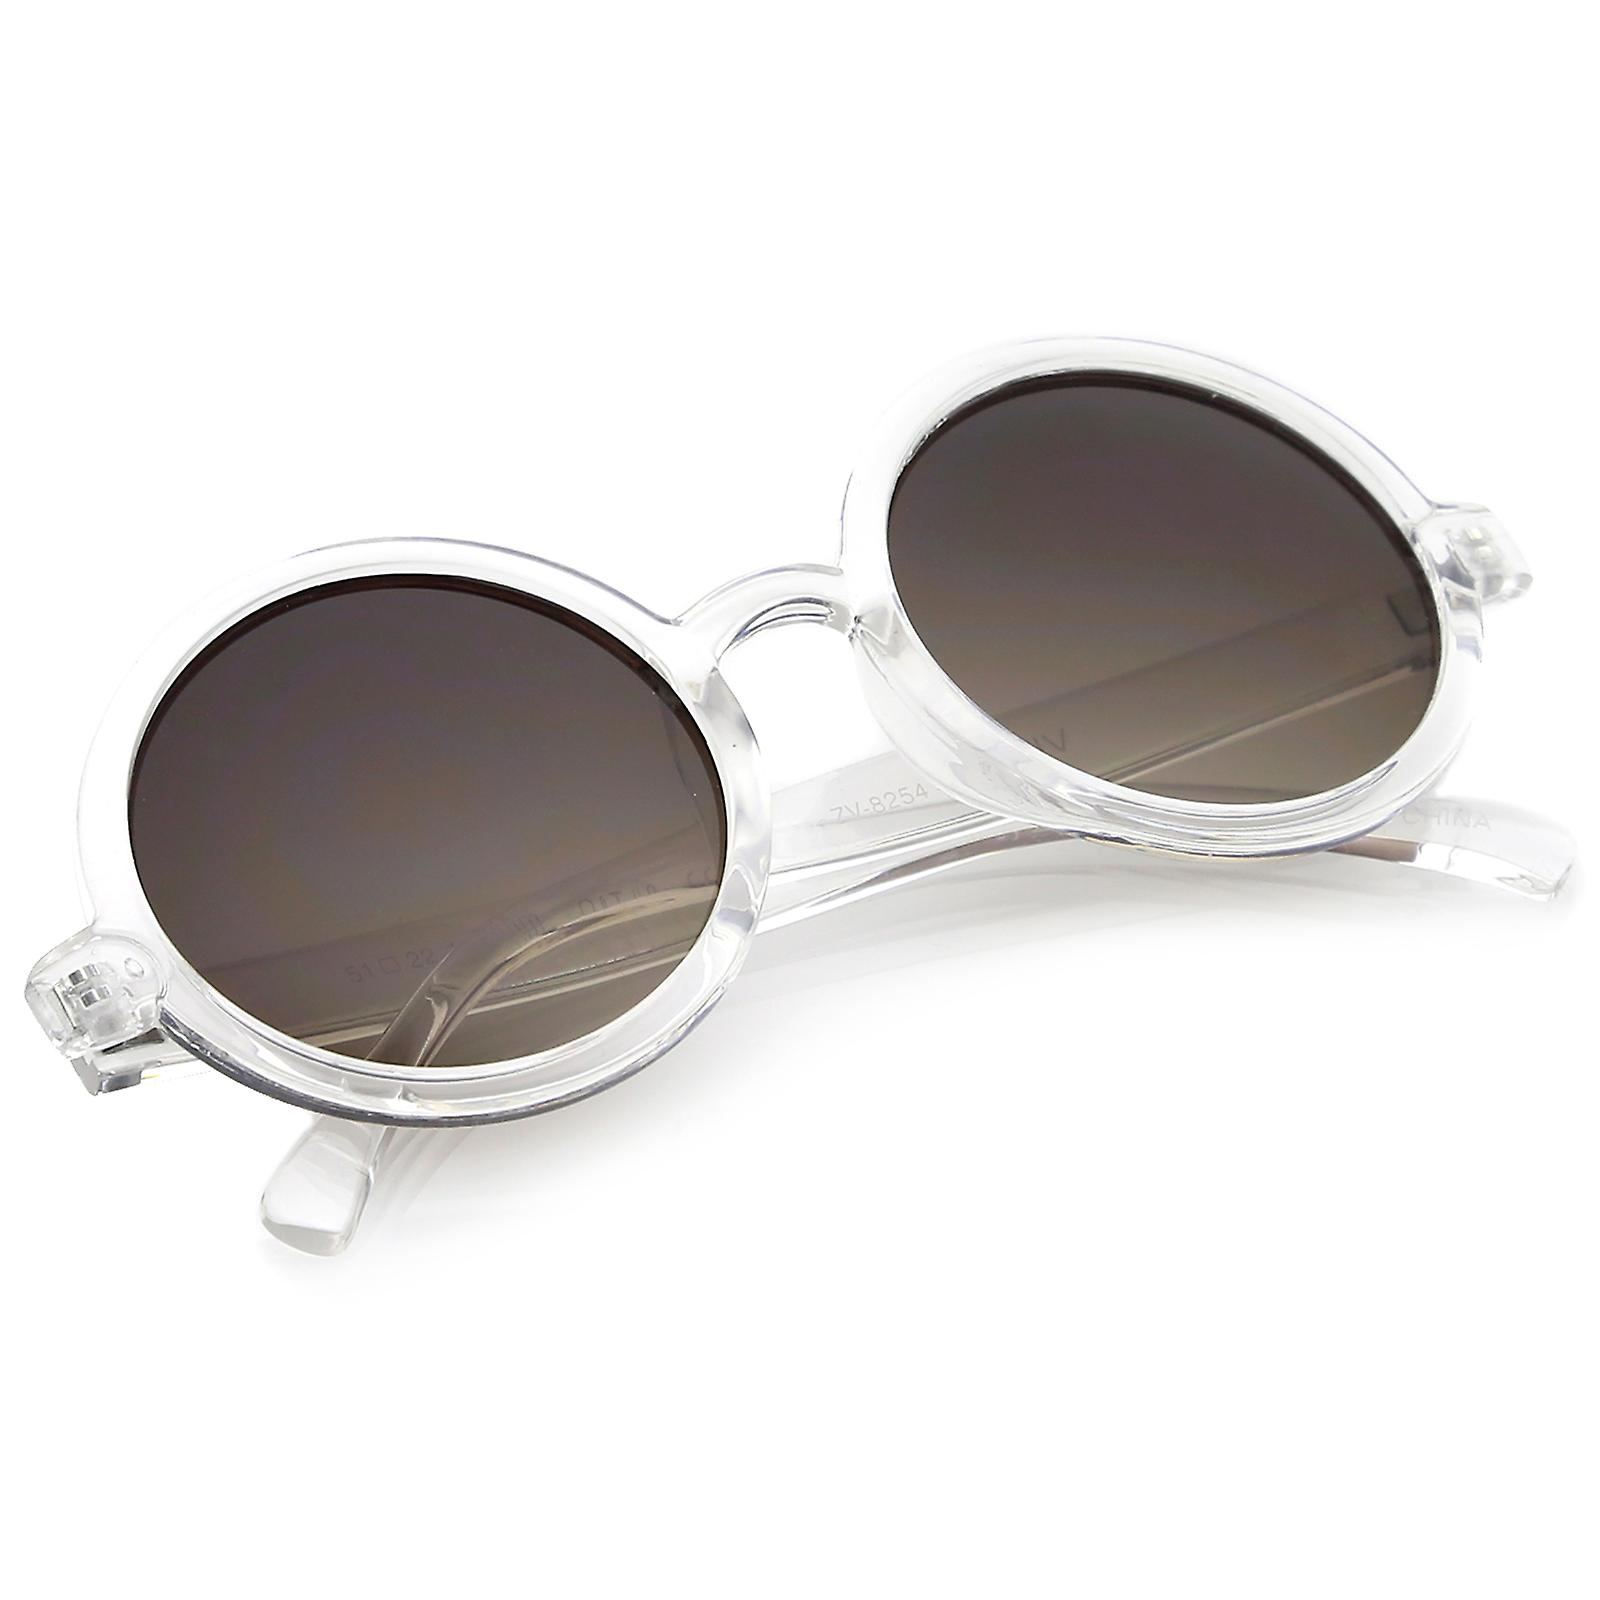 125bd5a4a Classic Retro Horn Rimmed Neutral-Colored Lens Round Sunglasses 52mm ...